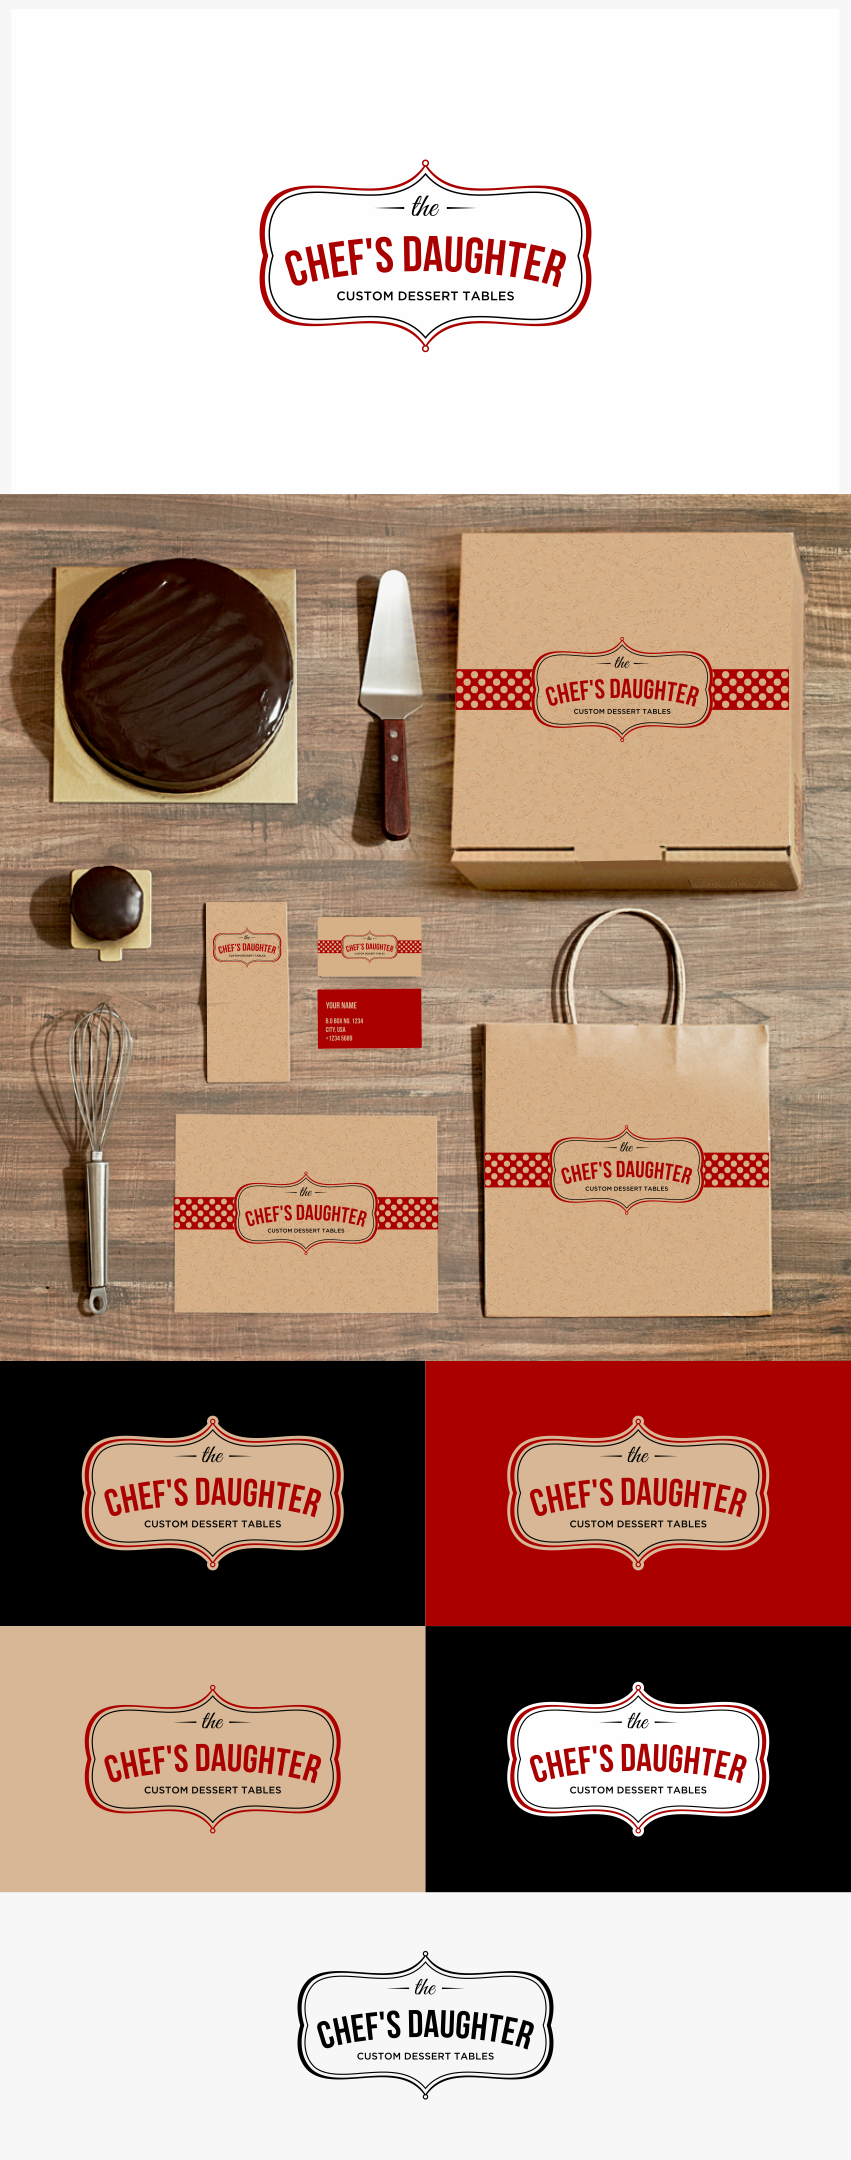 Blend culinary tradition and creative expression in a small business LOGO